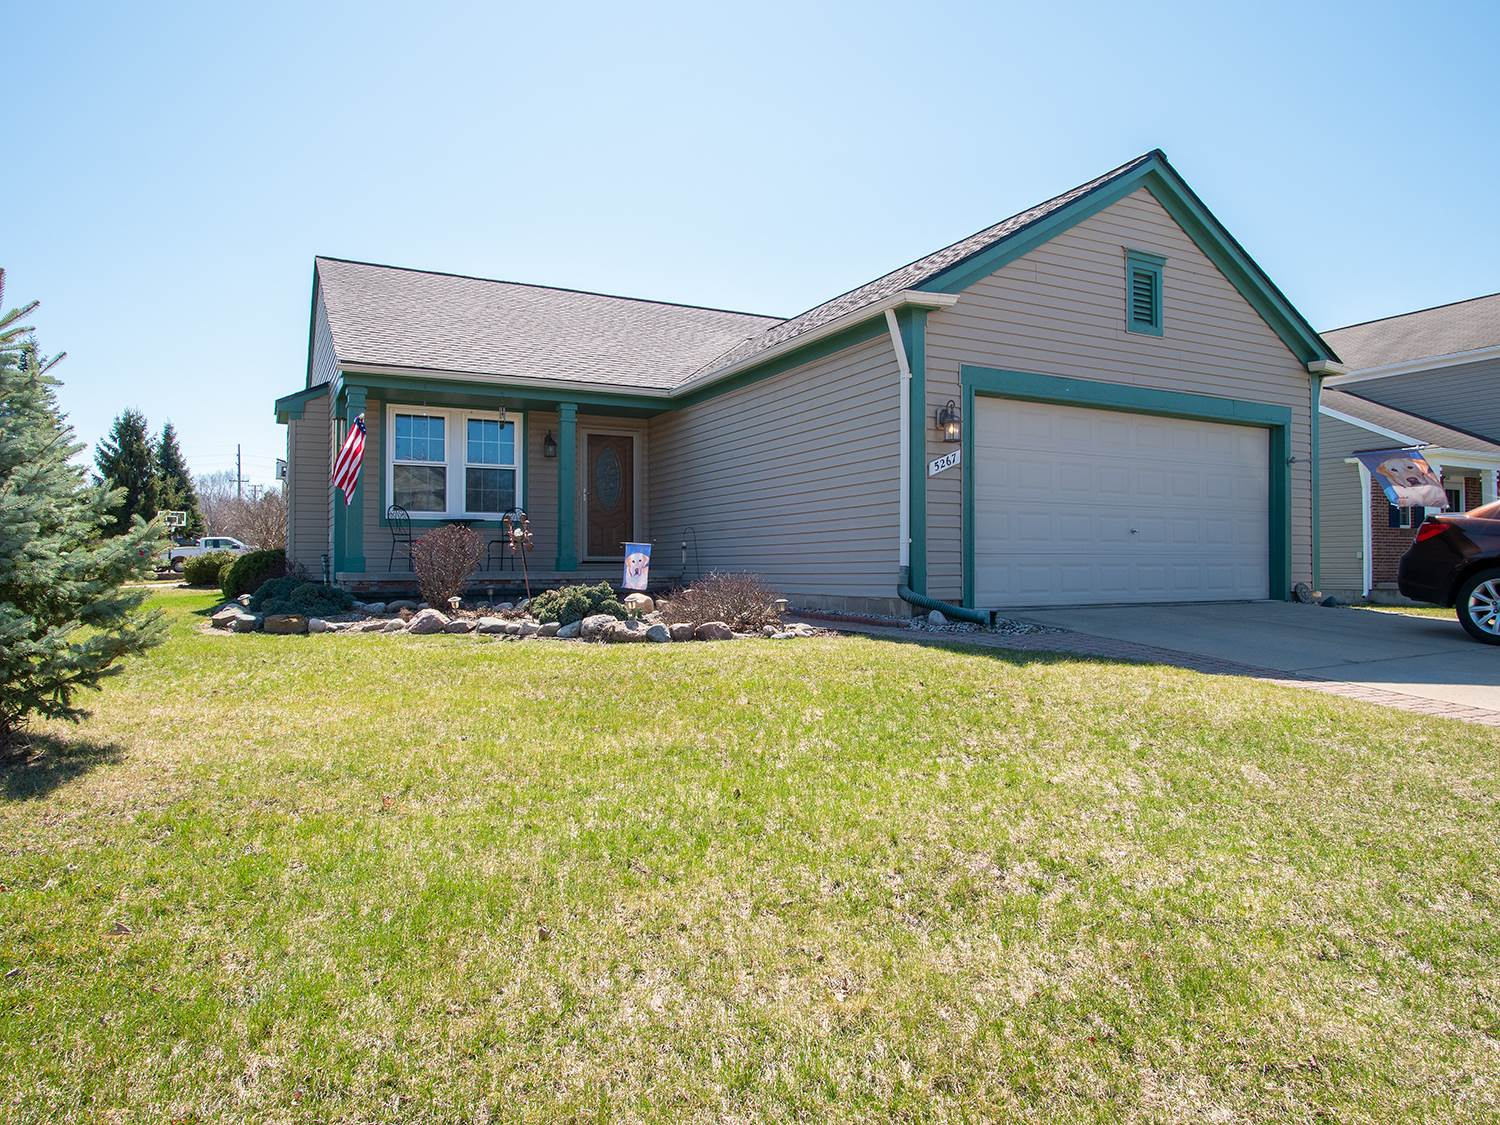 5267 Tamiami Trail, Waterford, MI 48329